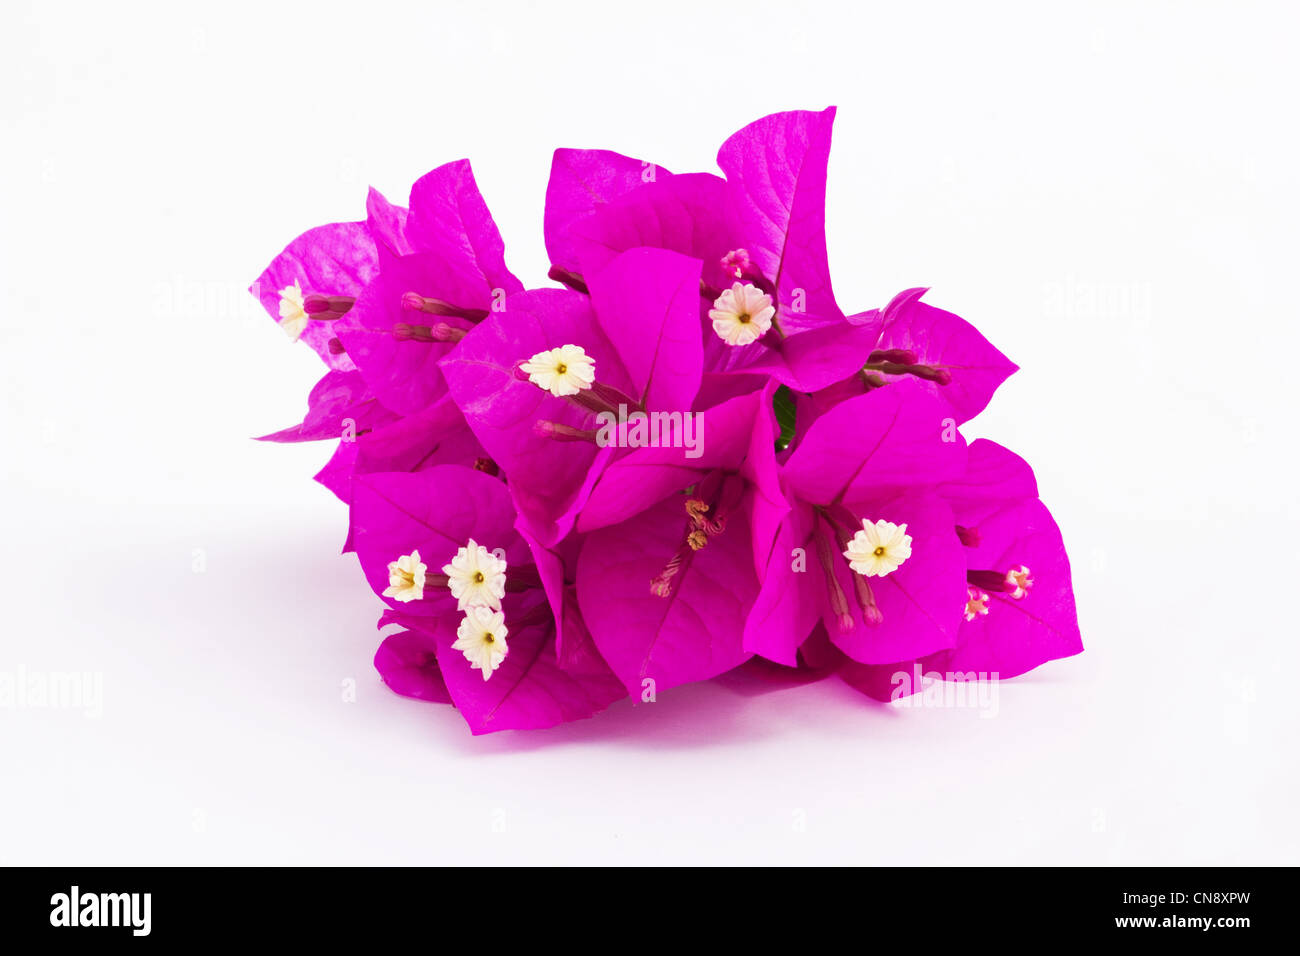 Pink bougainvillea flowers on white background - Stock Image